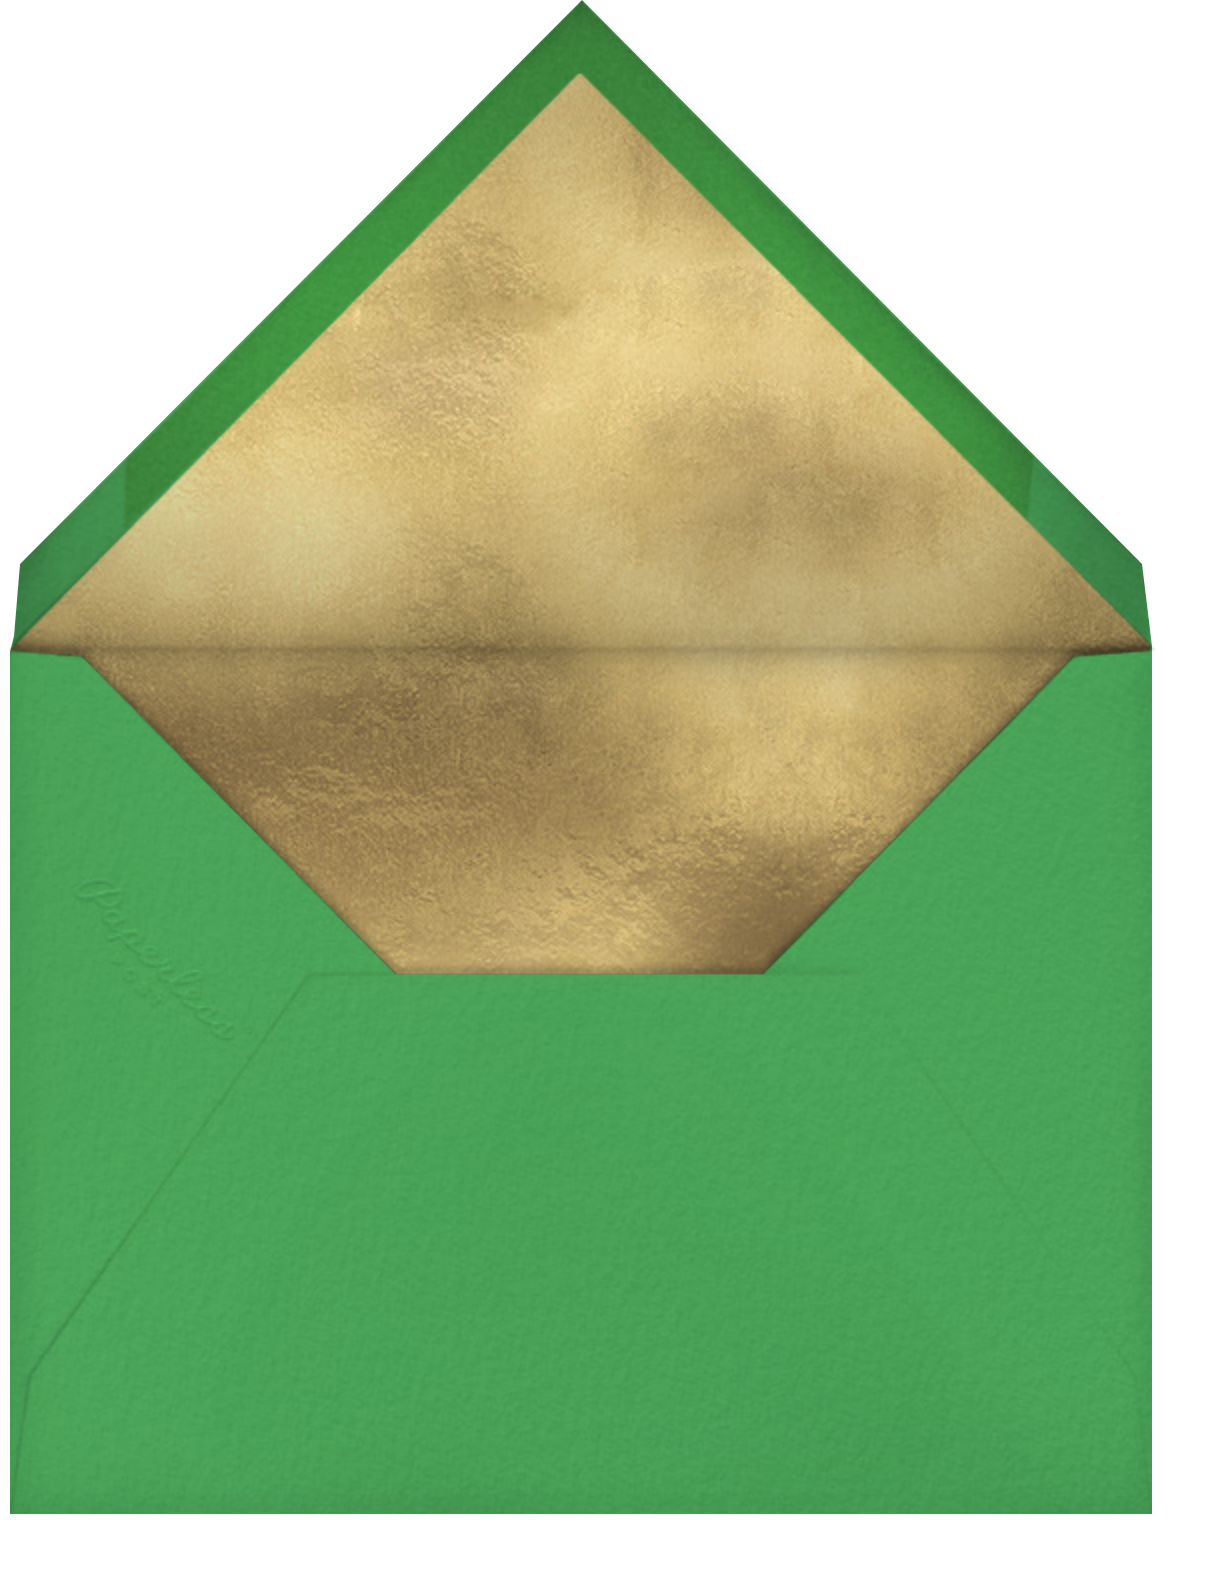 Putting Green (Danielle Kroll) - Red Cap Cards - Father's Day - envelope back